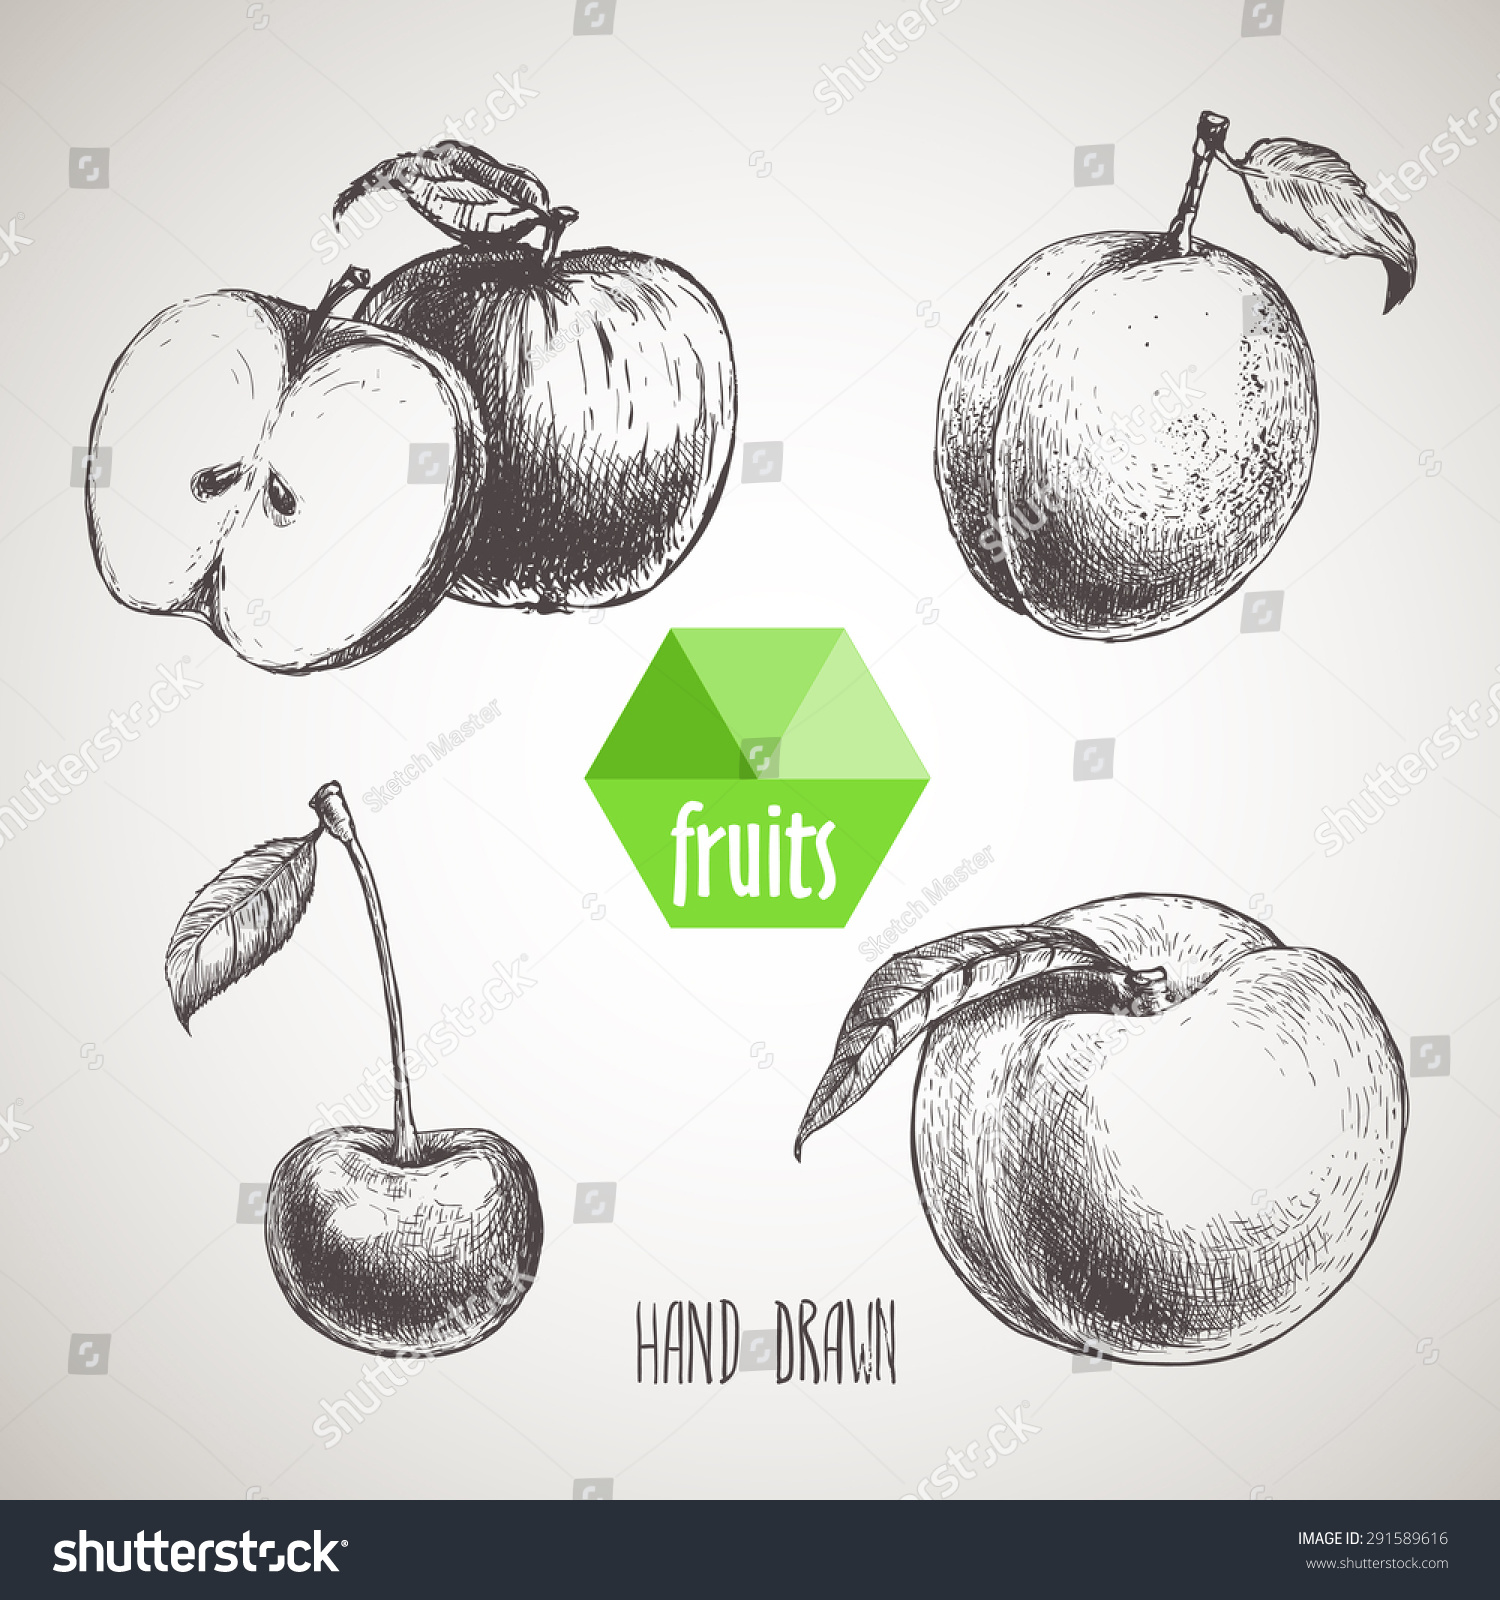 Hand Drawn Sketch Style Fruits Set Stock Vector 291589616 - Shutterstock